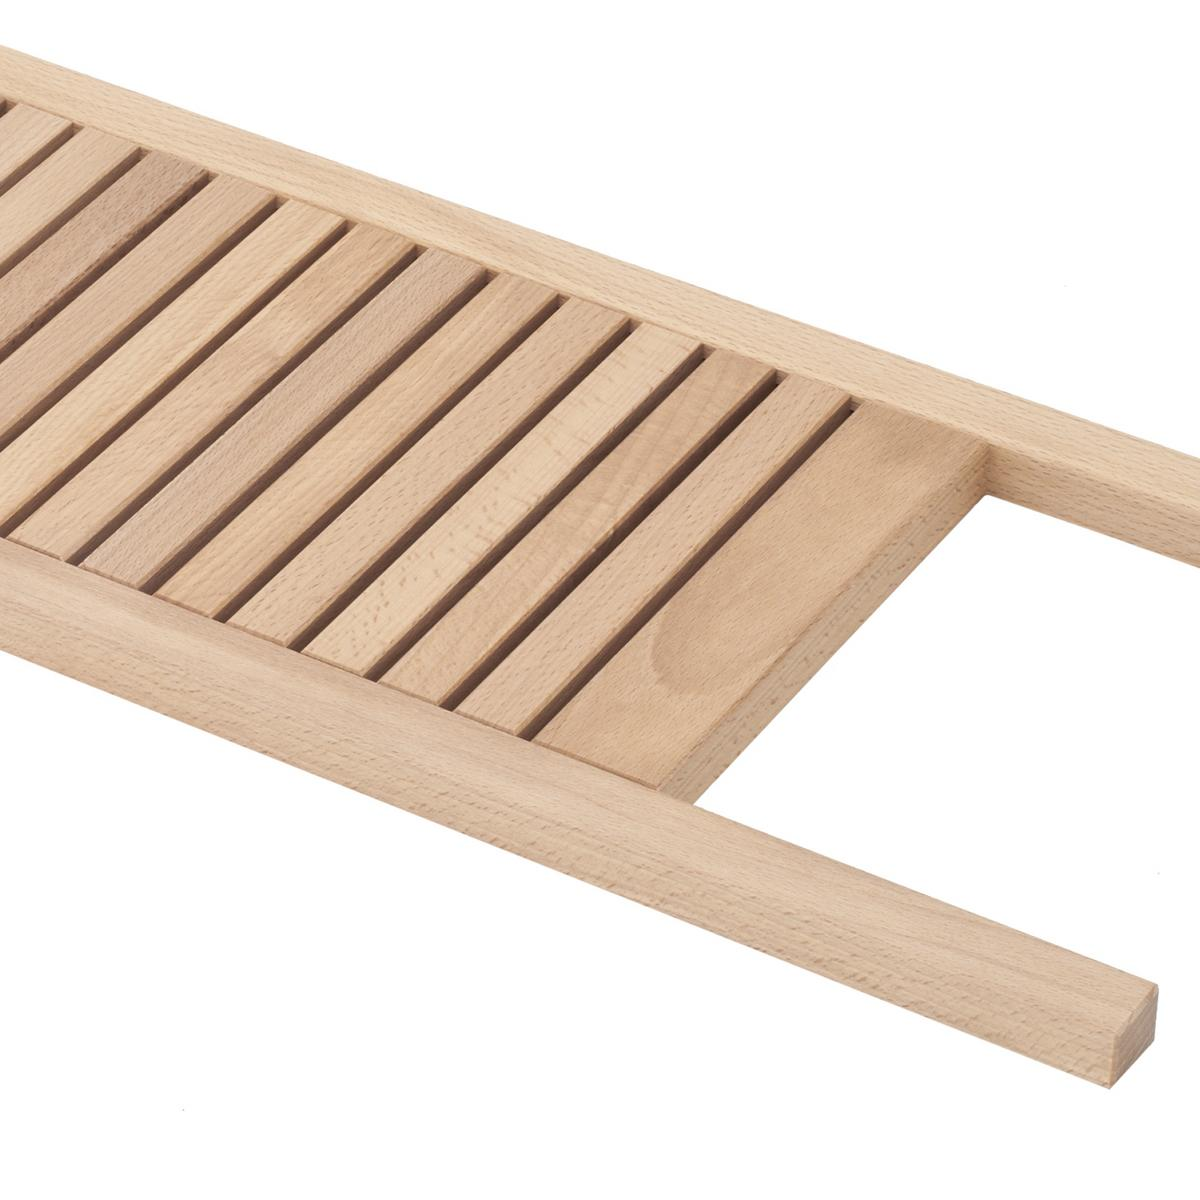 Decor Walther Wood bath trays | Artedona.com